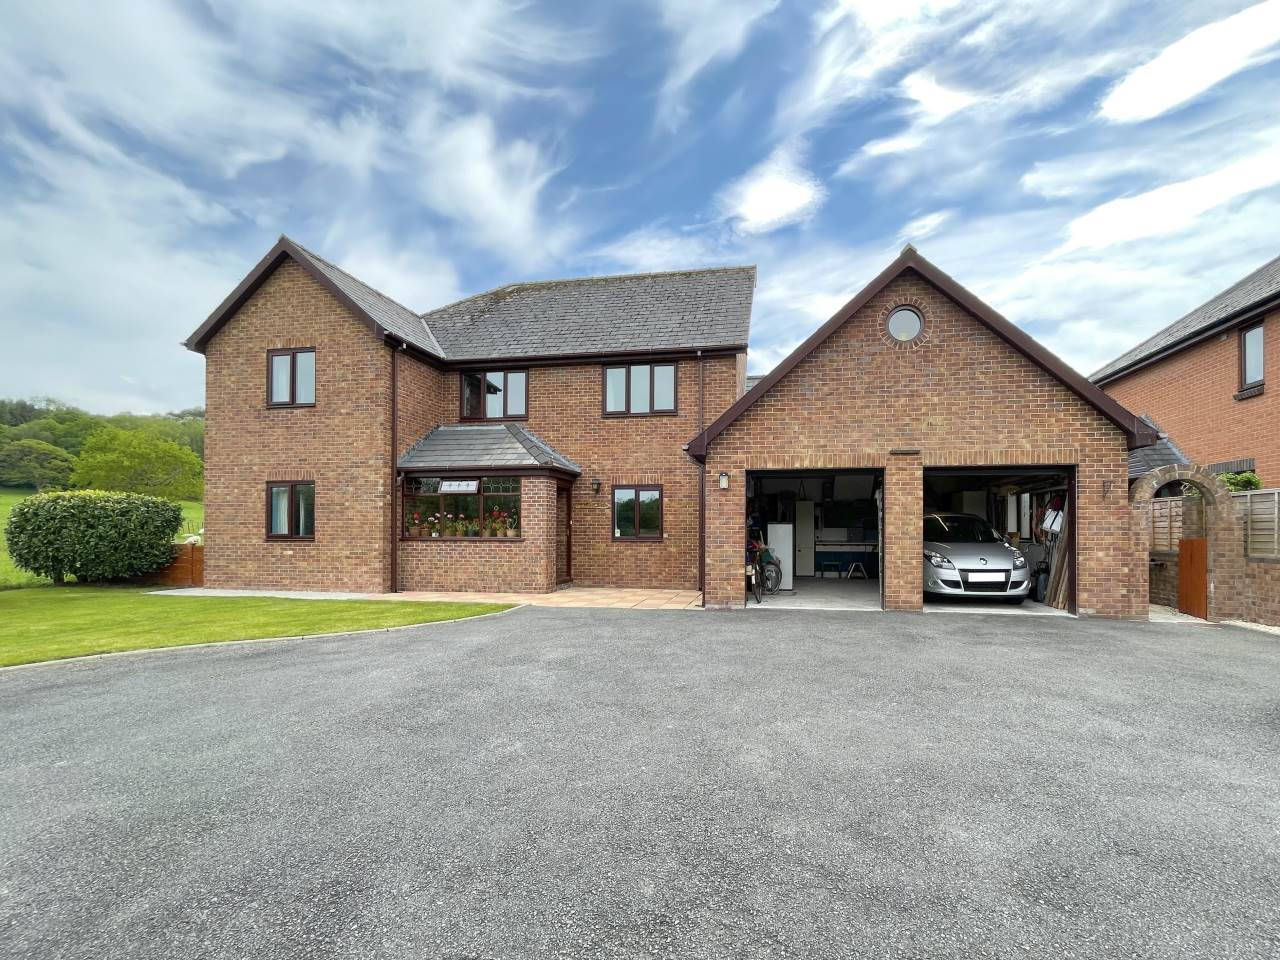 4 bed house for sale in Swn-y-Plant, 1 Troedybryn - Property Image 1